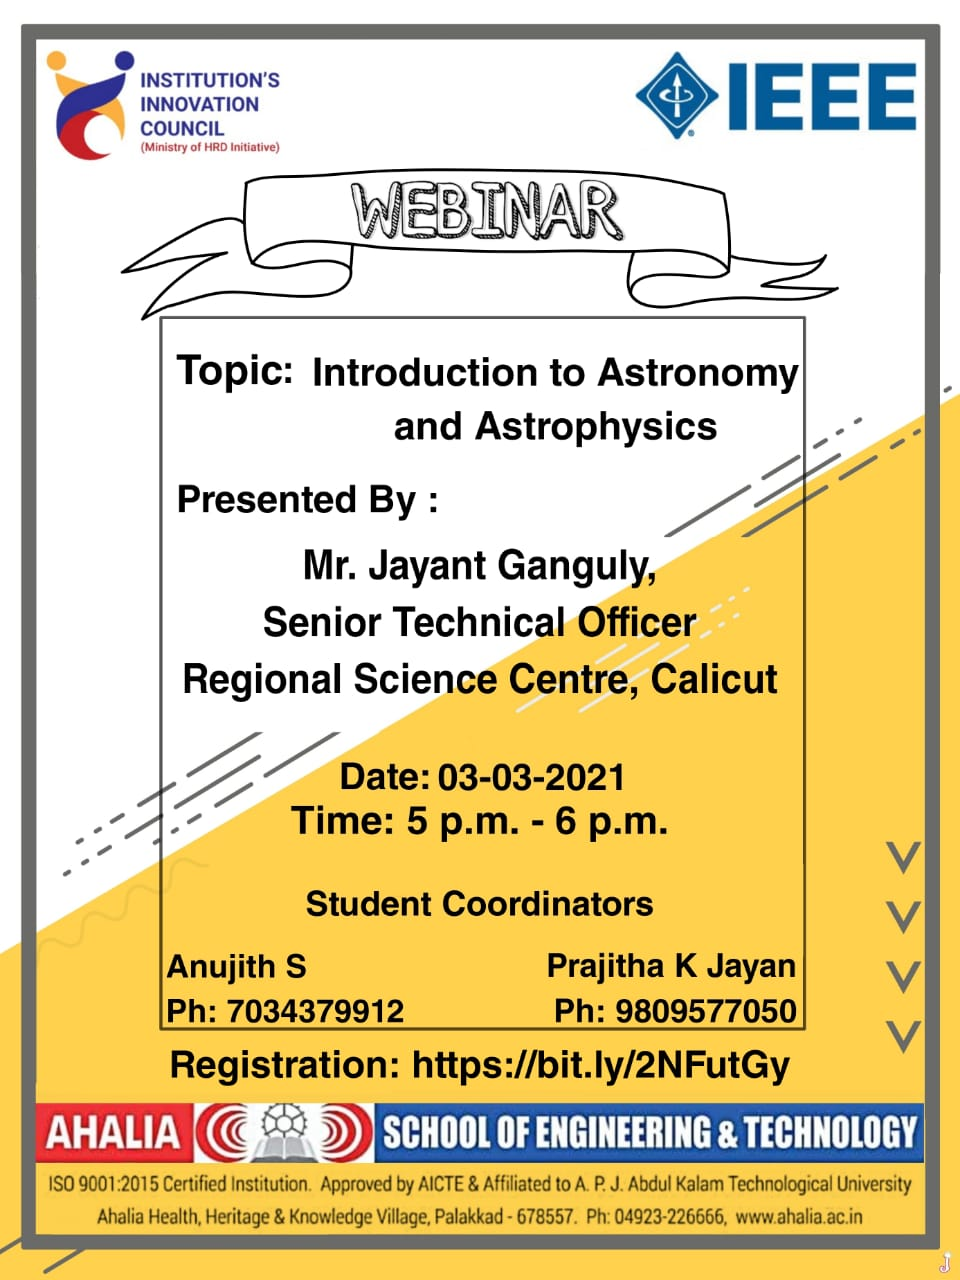 Webinar on 'Introduction to Astronomy and Astrophysics'